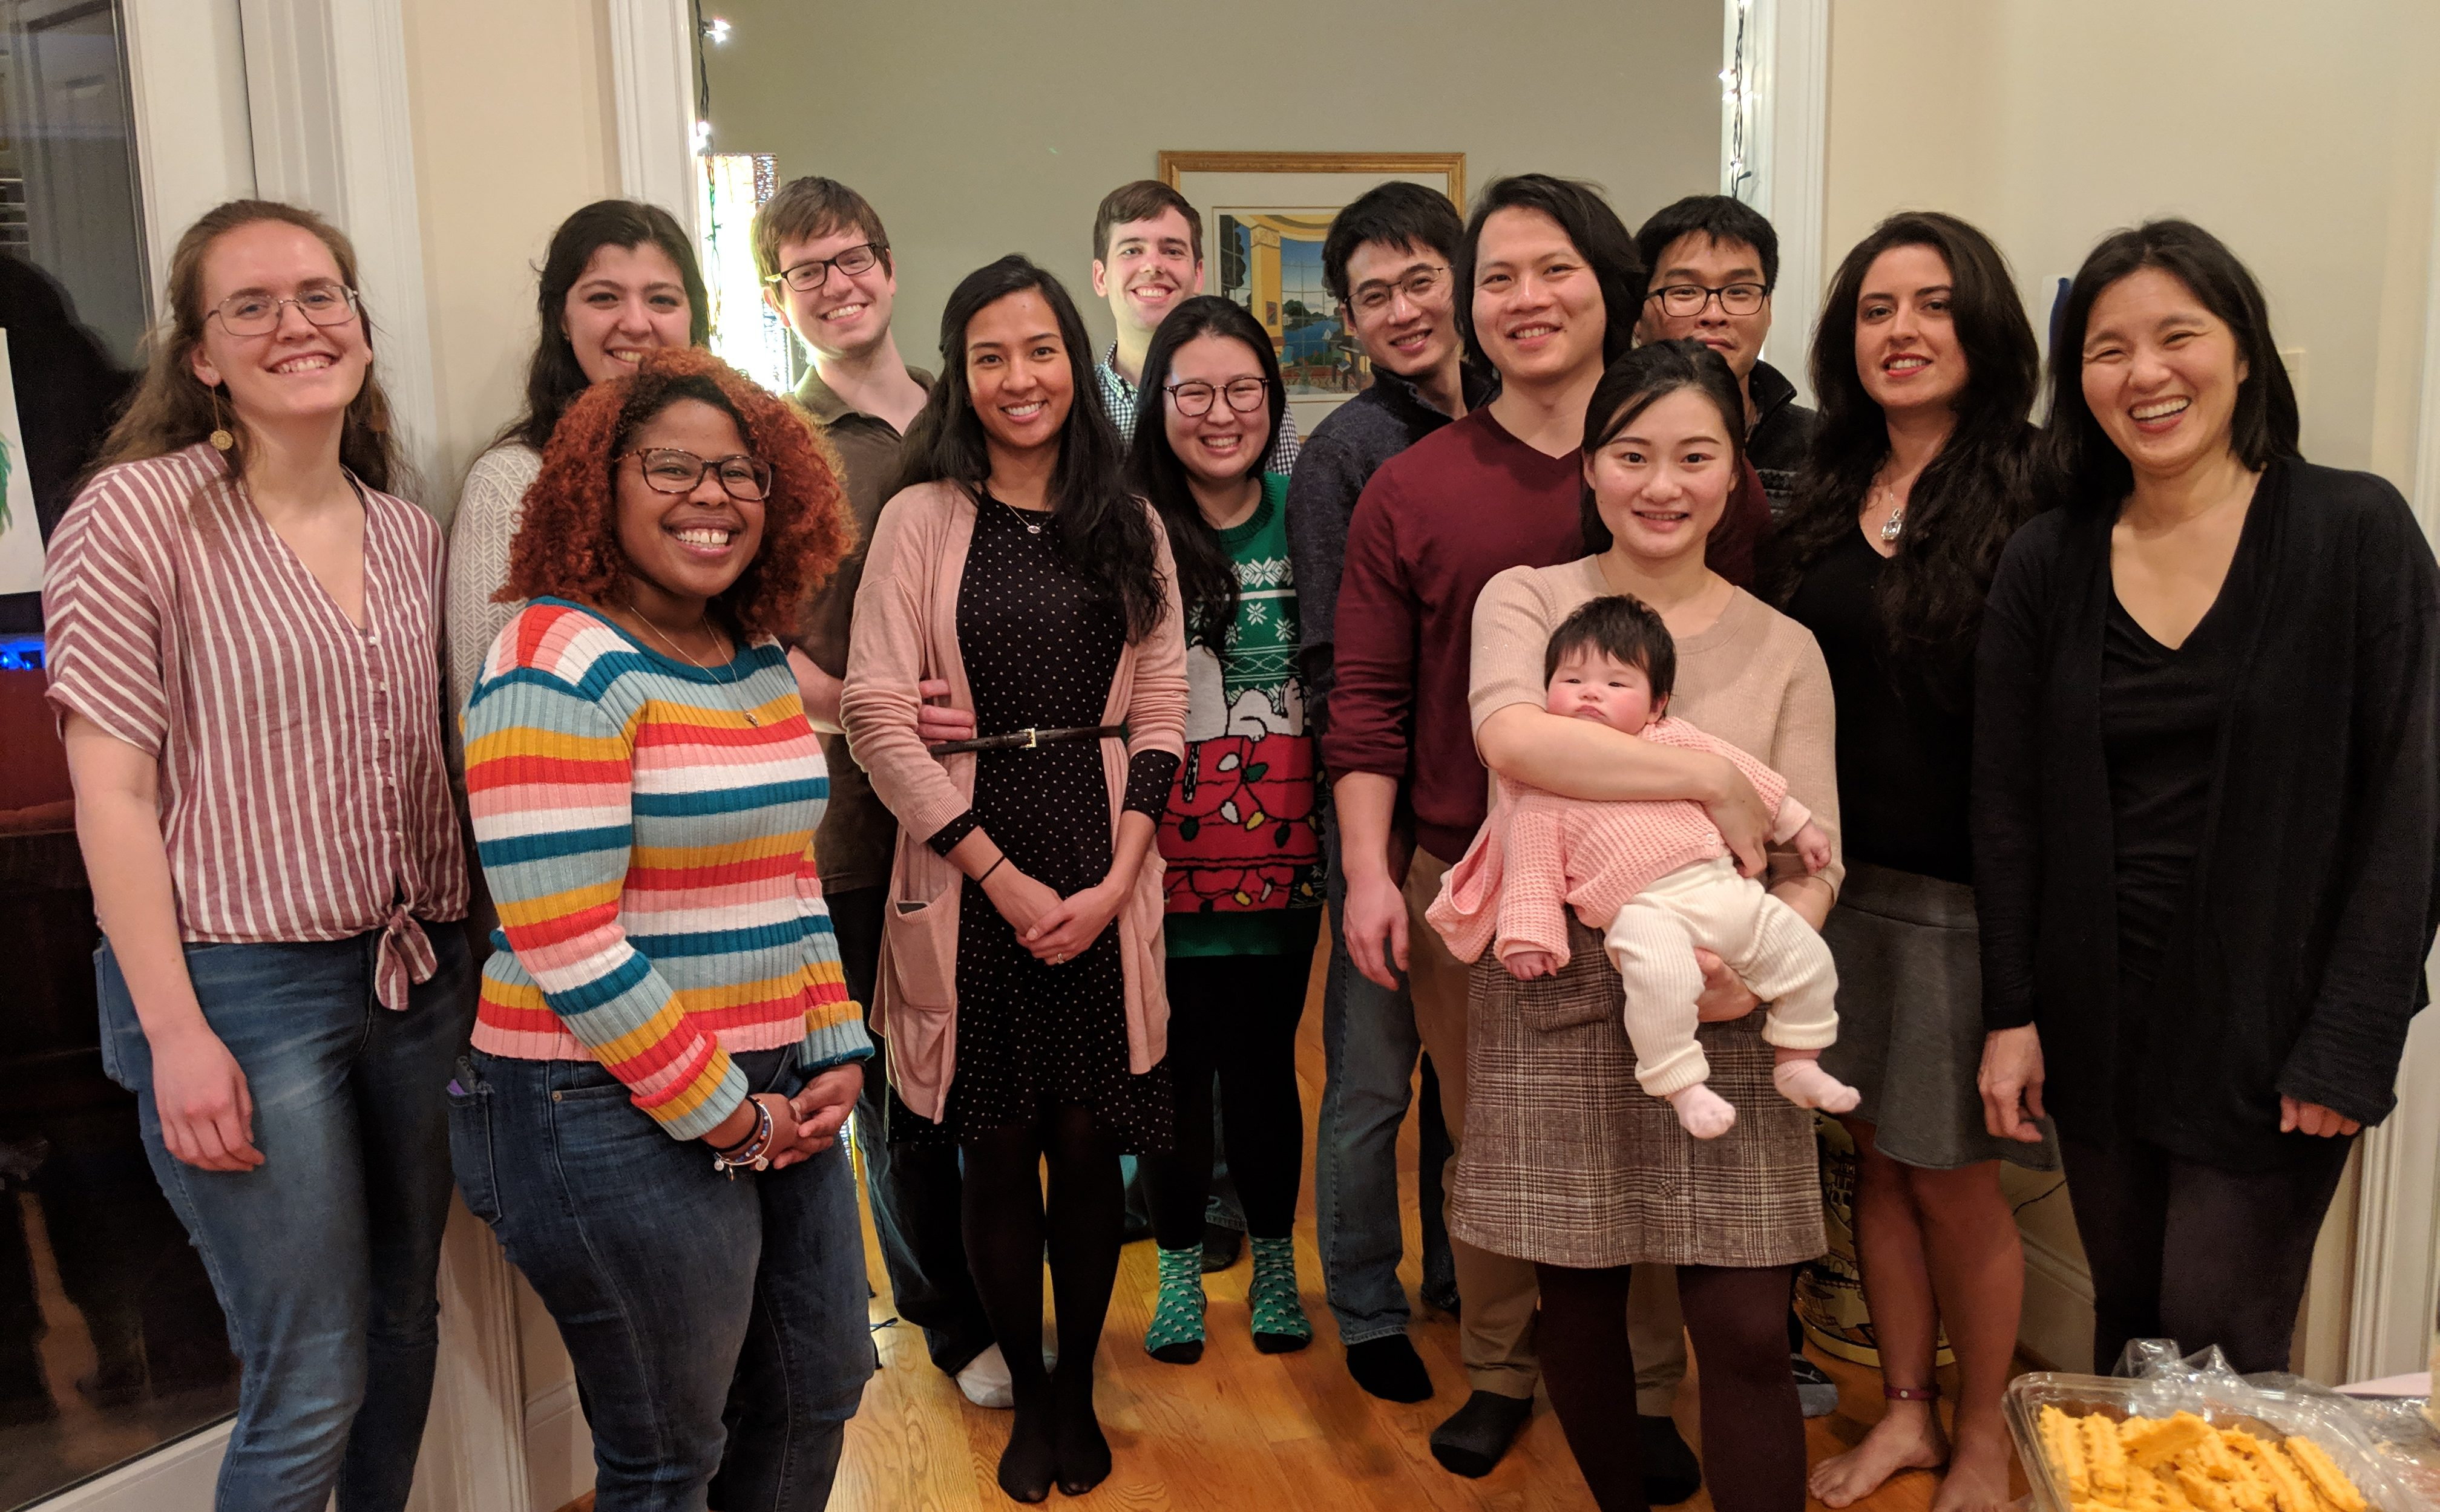 Lab Members from Yeh lab are standing together and smiling at the camera. They are dressed in warm clothes, with some holiday-themed sweaters and socks.